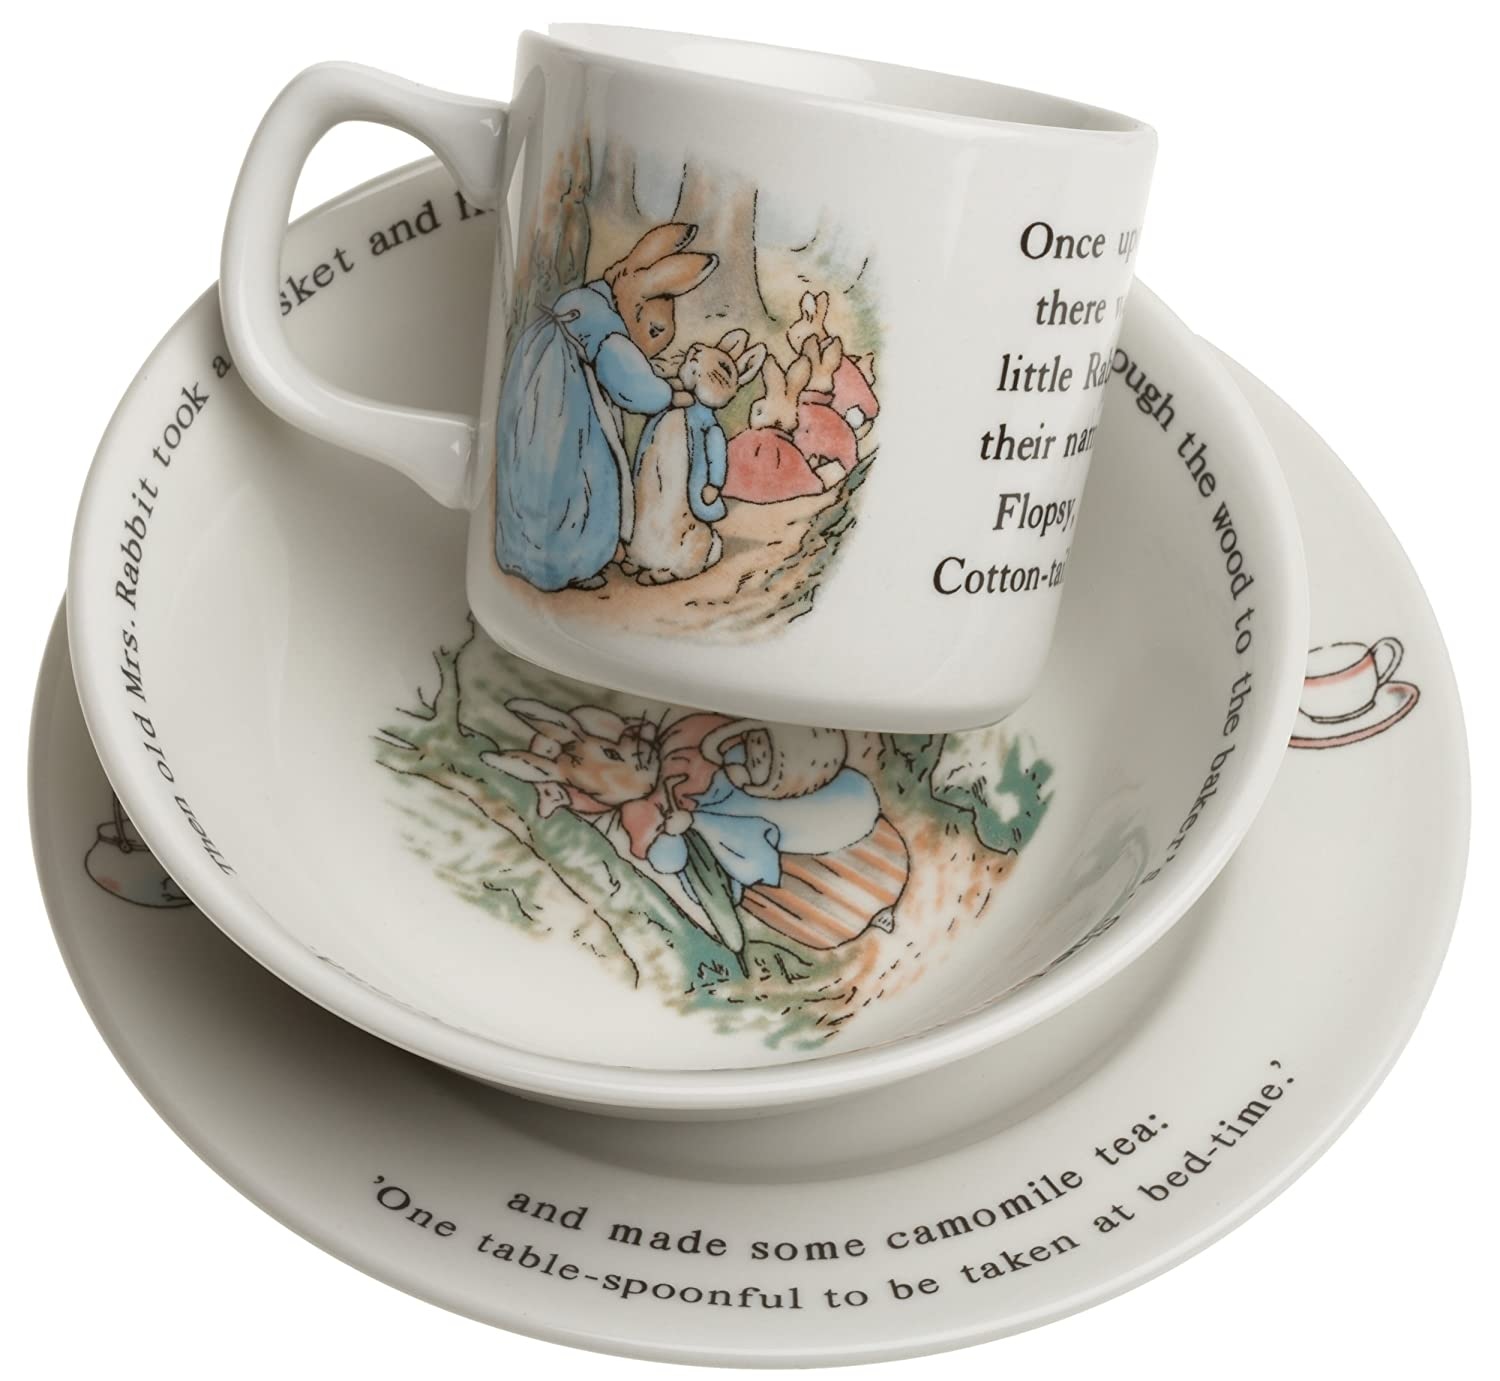 Amazon.com | Wedgwood Peter Rabbit Original 3-Piece Set Mug Plate and Bowl Dinnerware Sets Accent Plates  sc 1 st  Amazon.com & Amazon.com | Wedgwood Peter Rabbit Original 3-Piece Set Mug Plate ...